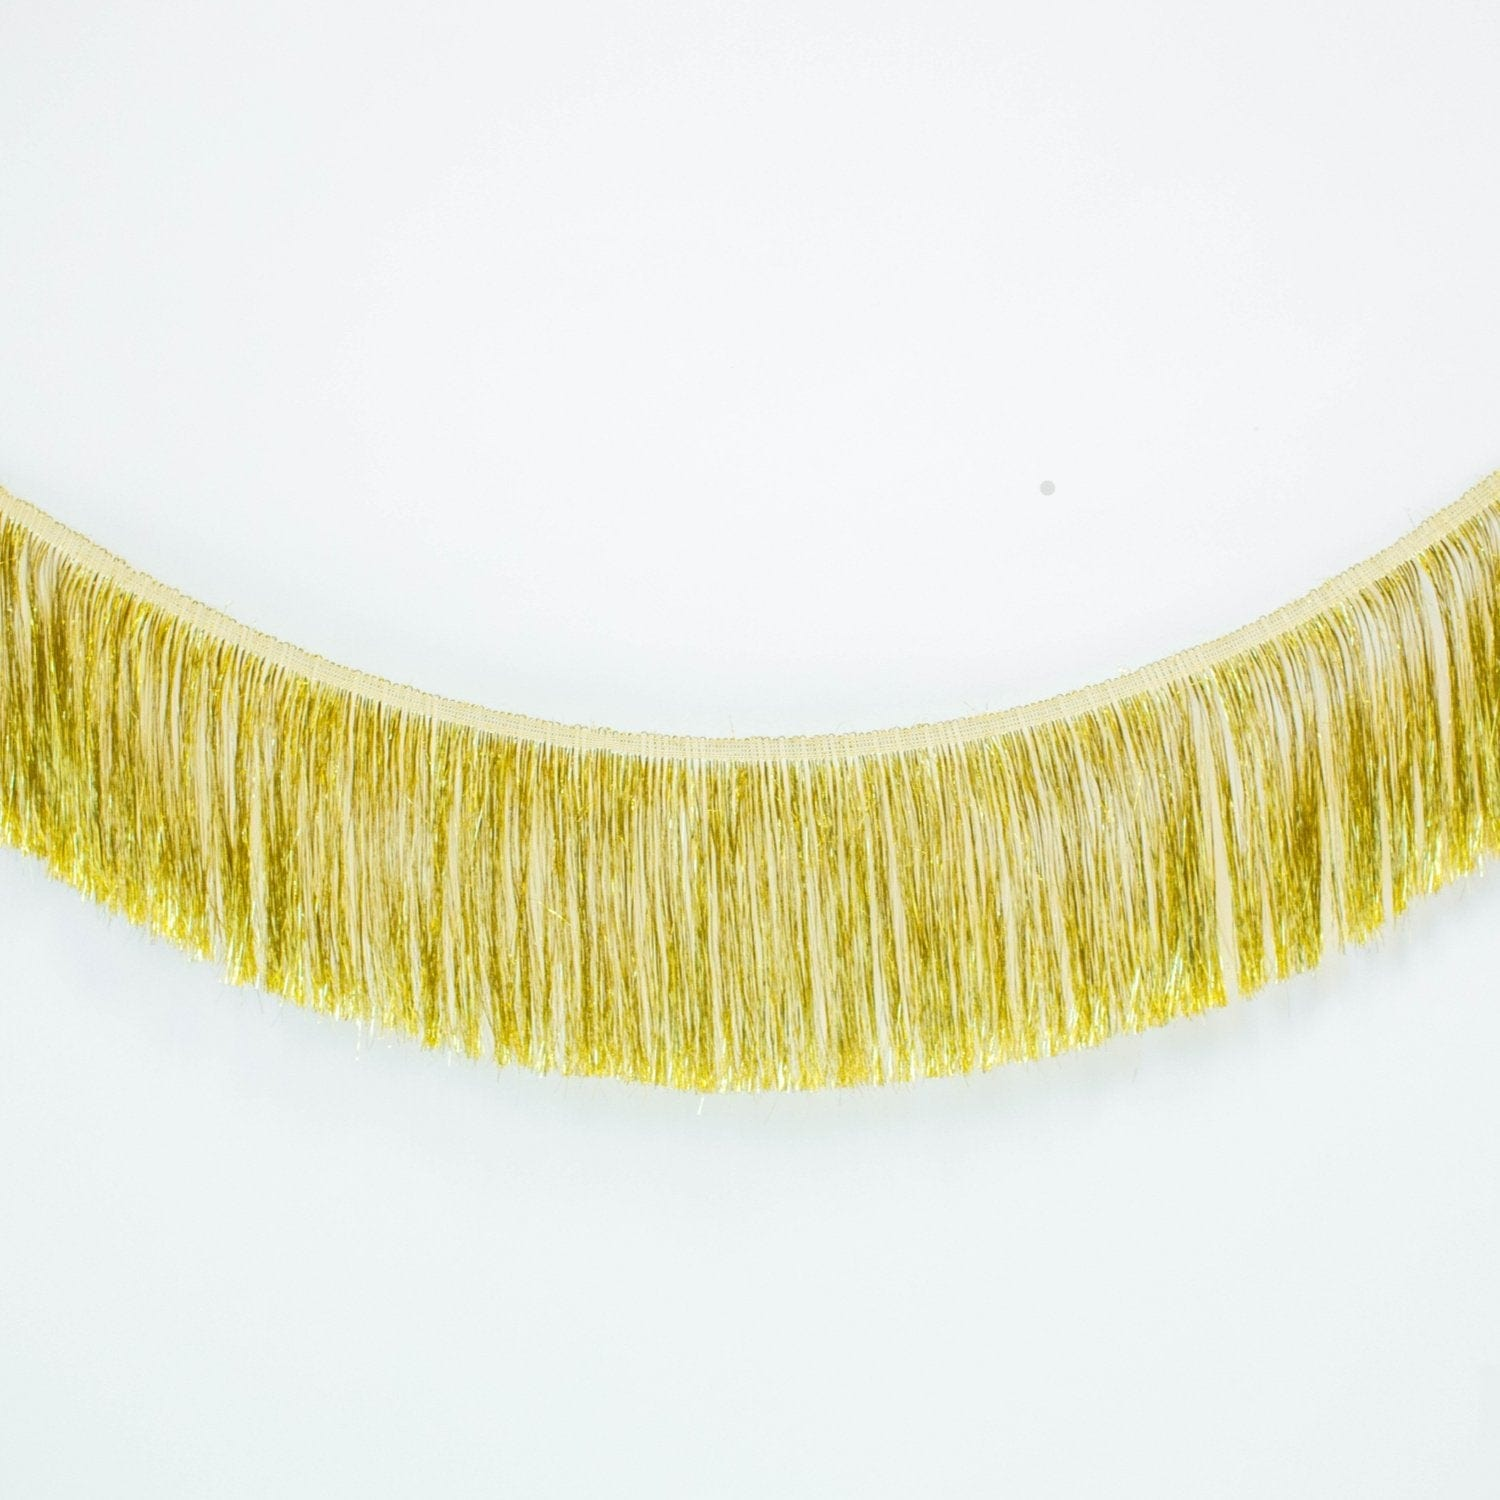 Tinsel Fringe Garland | Gold Metallic Party Fringe UK